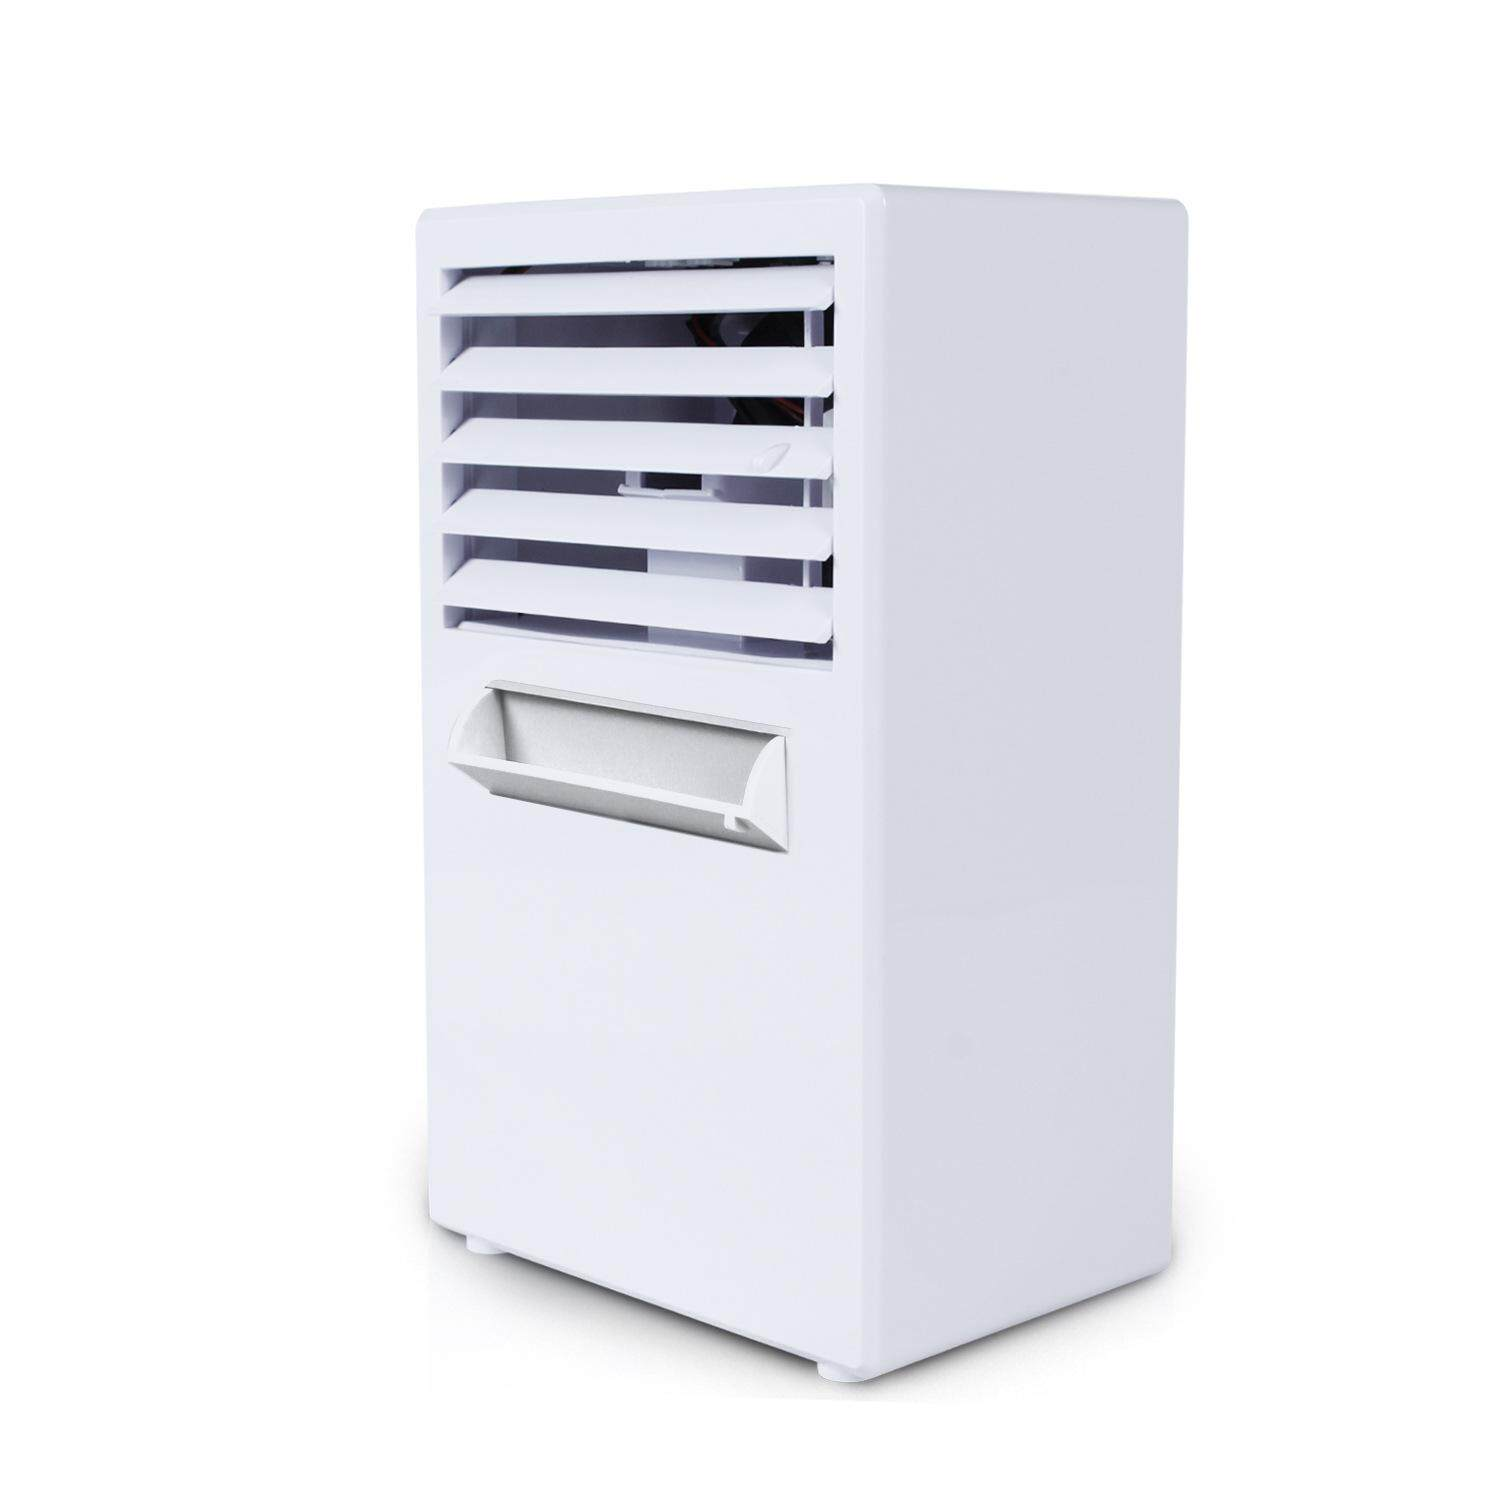 Creative Mini Mini Giant Humidifier Desktop Air Conditioning Fan New Cooling Small Leaf Free Fan